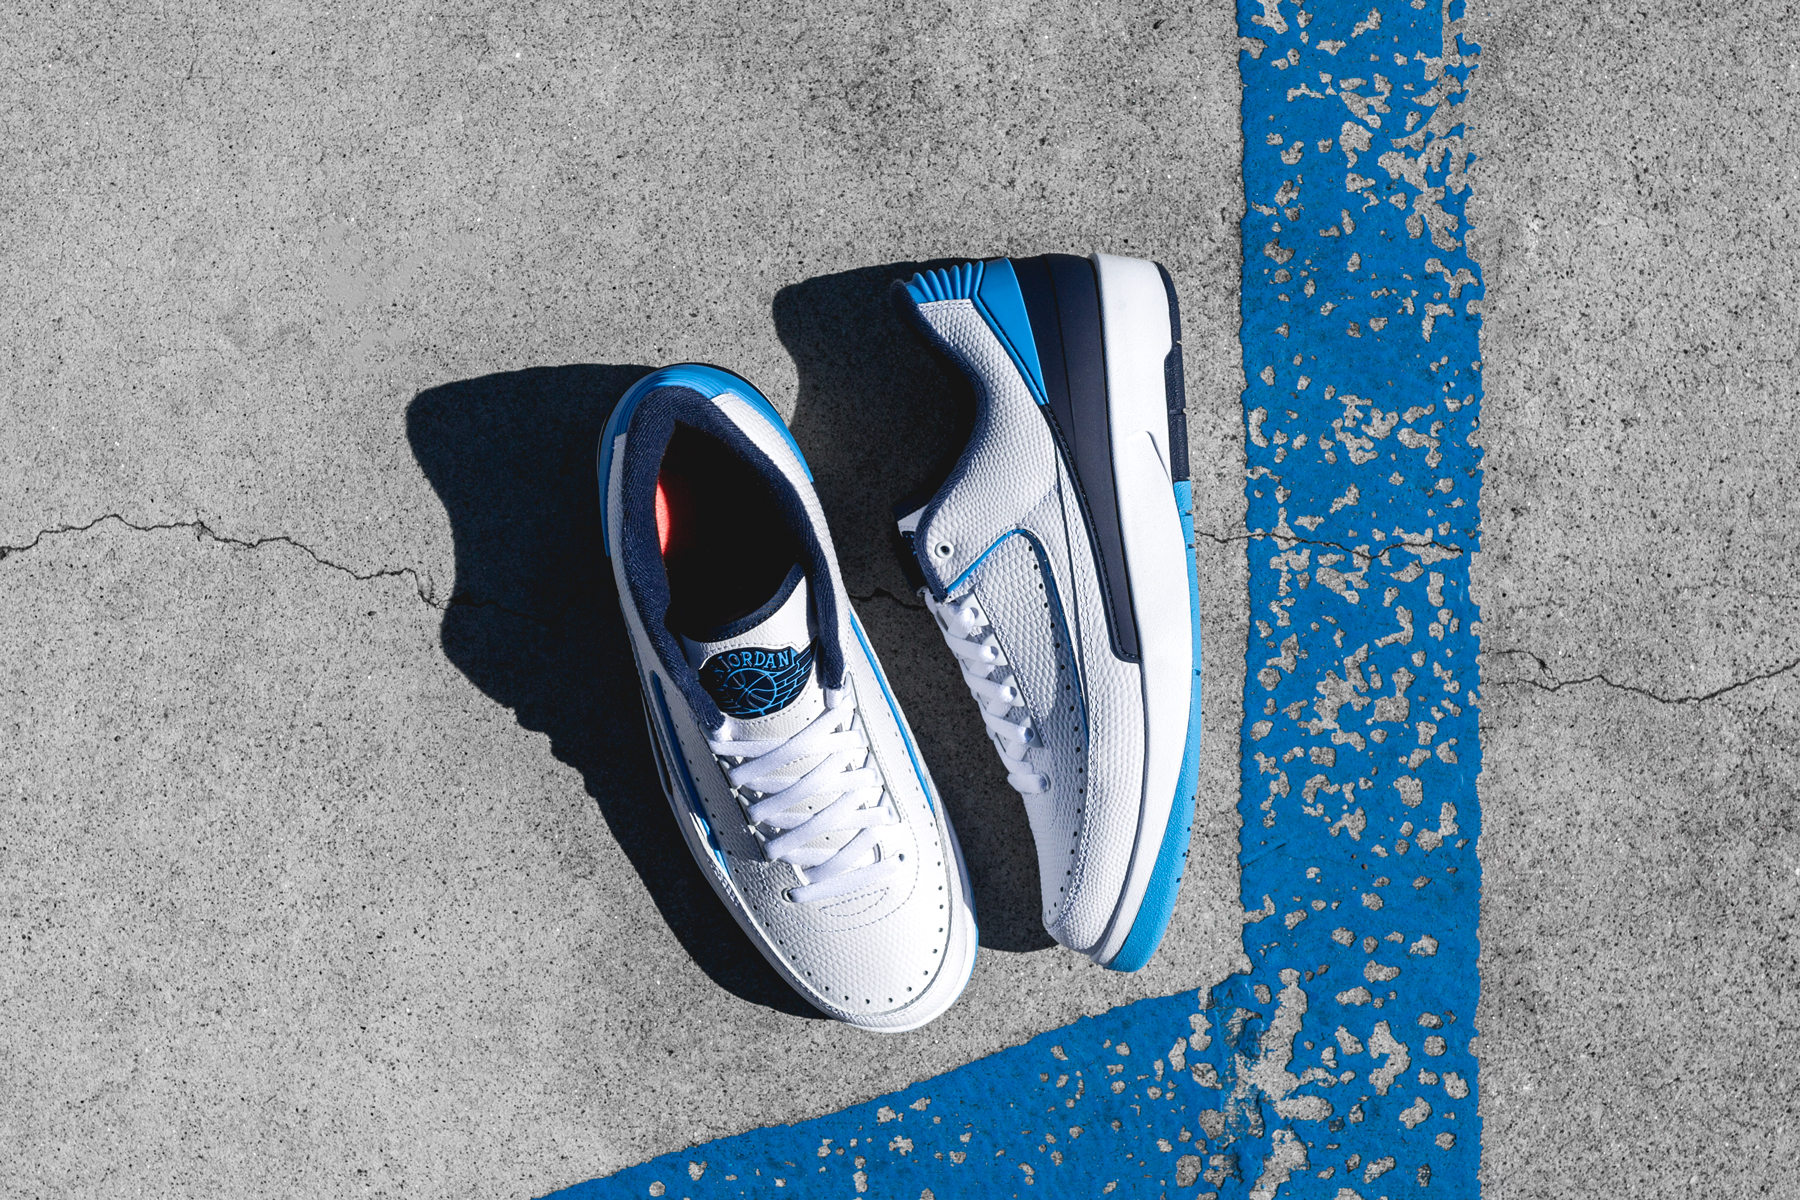 2bbb95ef081 Air Jordan 2 Retro Low UNC - Air 23 - Air Jordan Release Dates, Foamposite,  Air Max, and More